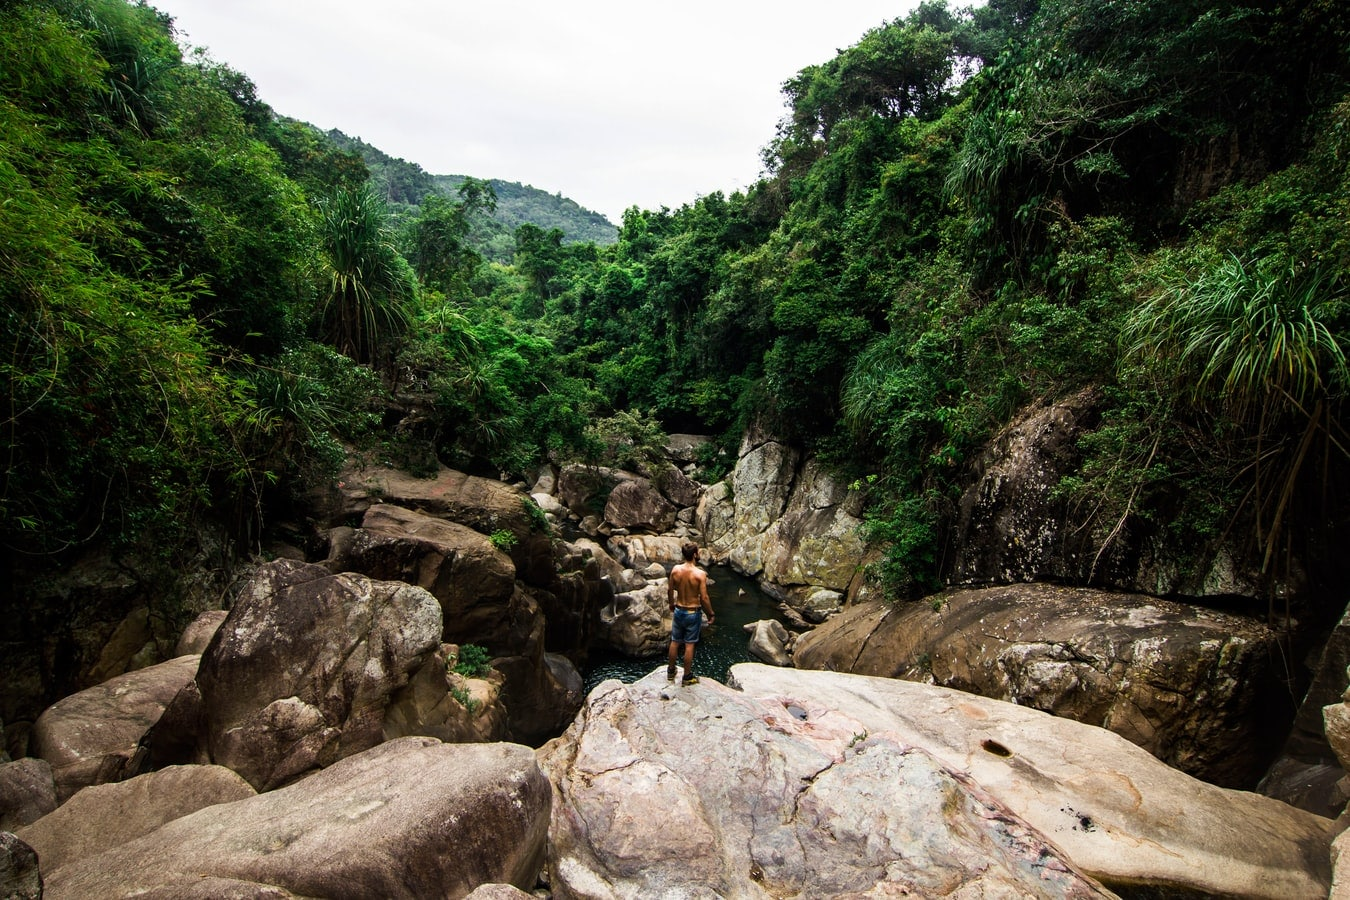 #6 Central Vietnam: Vietnam's geographic heart is known for historic sights, cultural interest and its ravishing beaches. Phong Nha region has lately emerged as a must-visit destination among travellers. | Unsplash